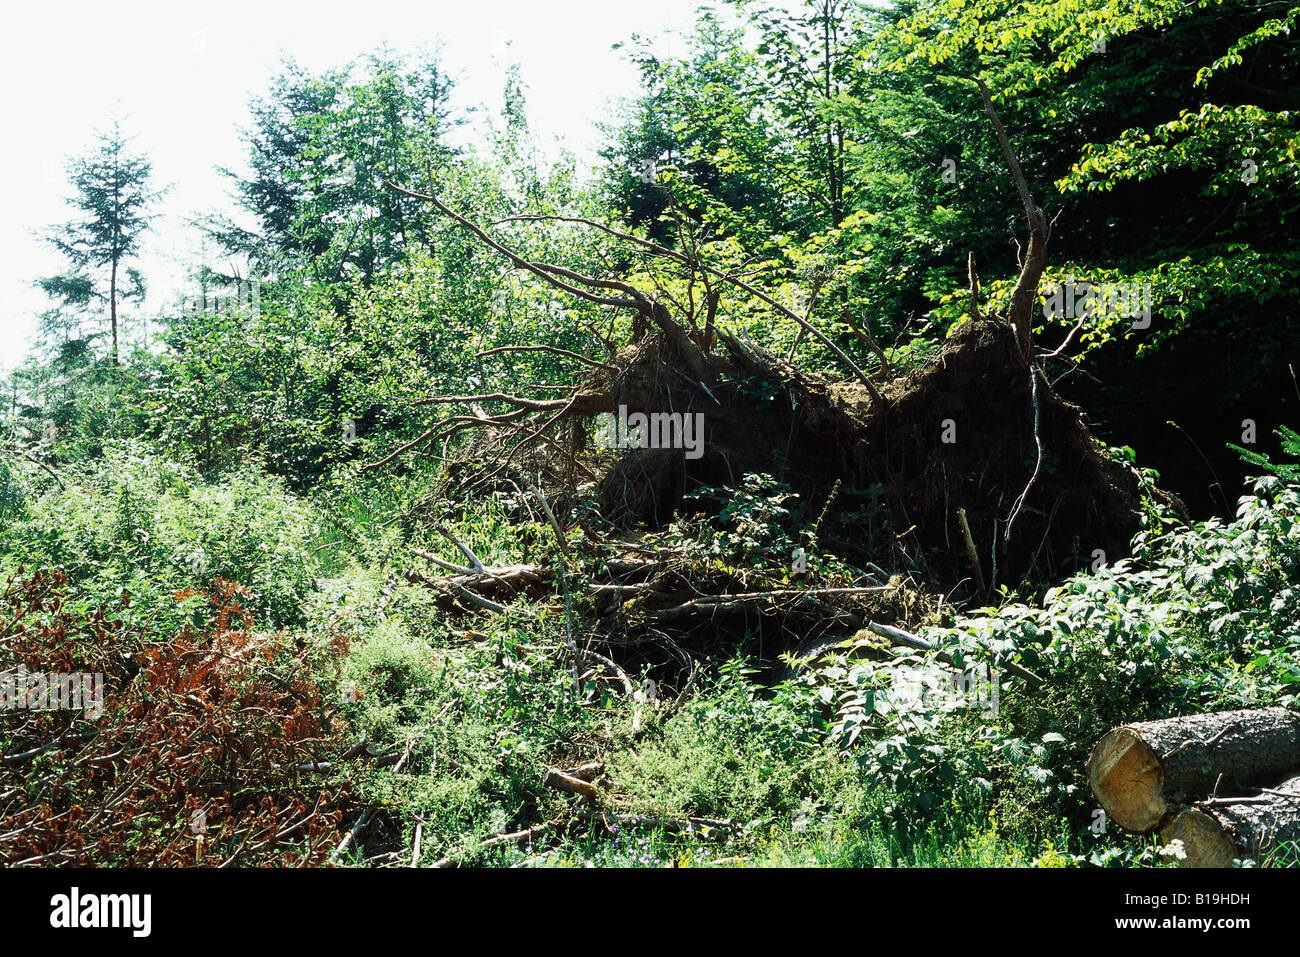 Uprooted tree - Stock Image